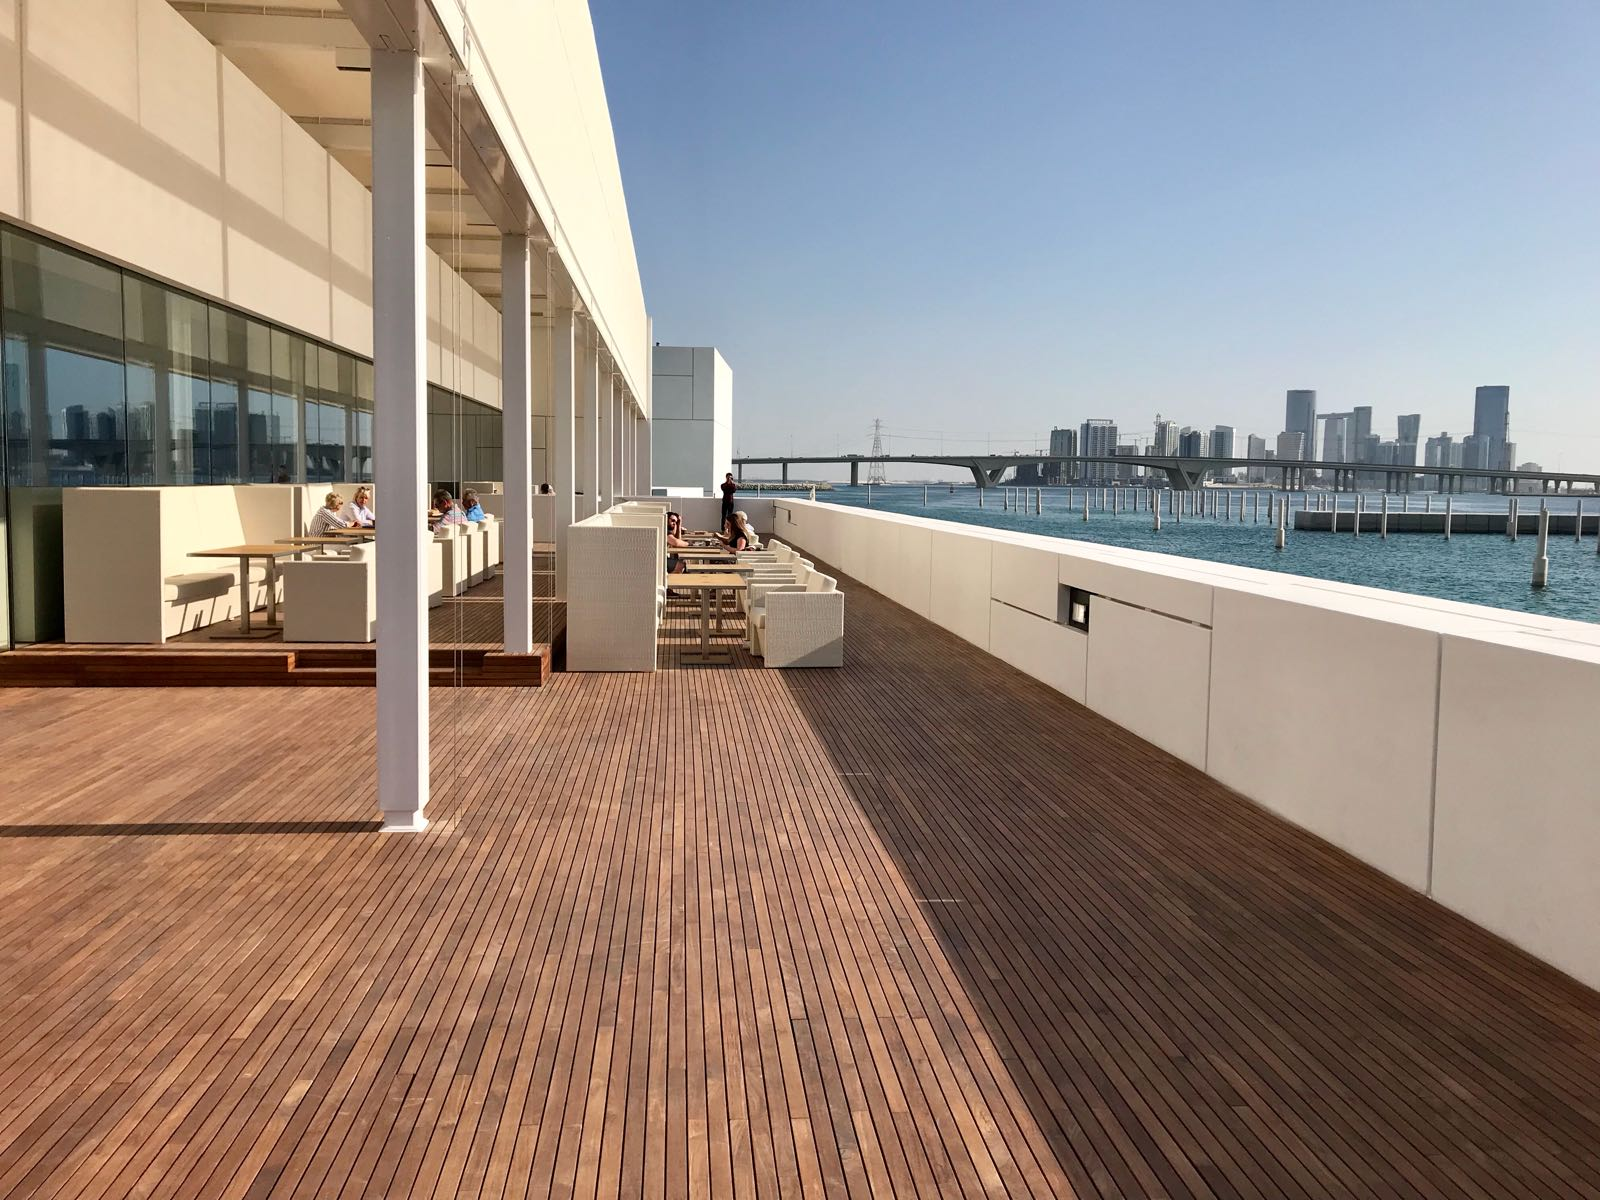 Contemporary rooftop hardwood decking